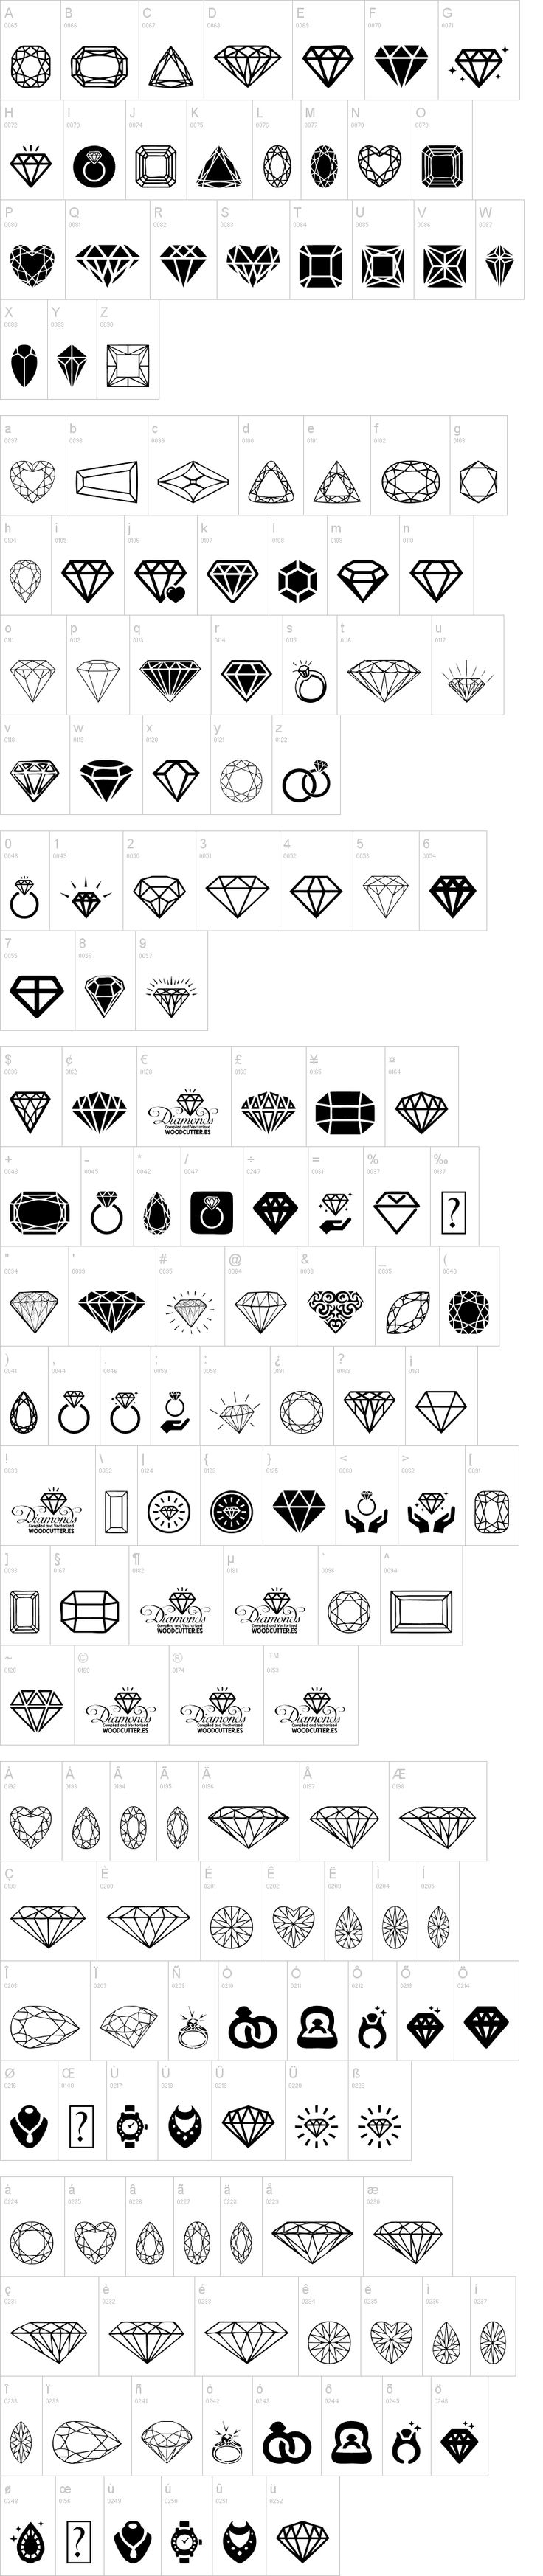 Diamonds 100% free dingbats